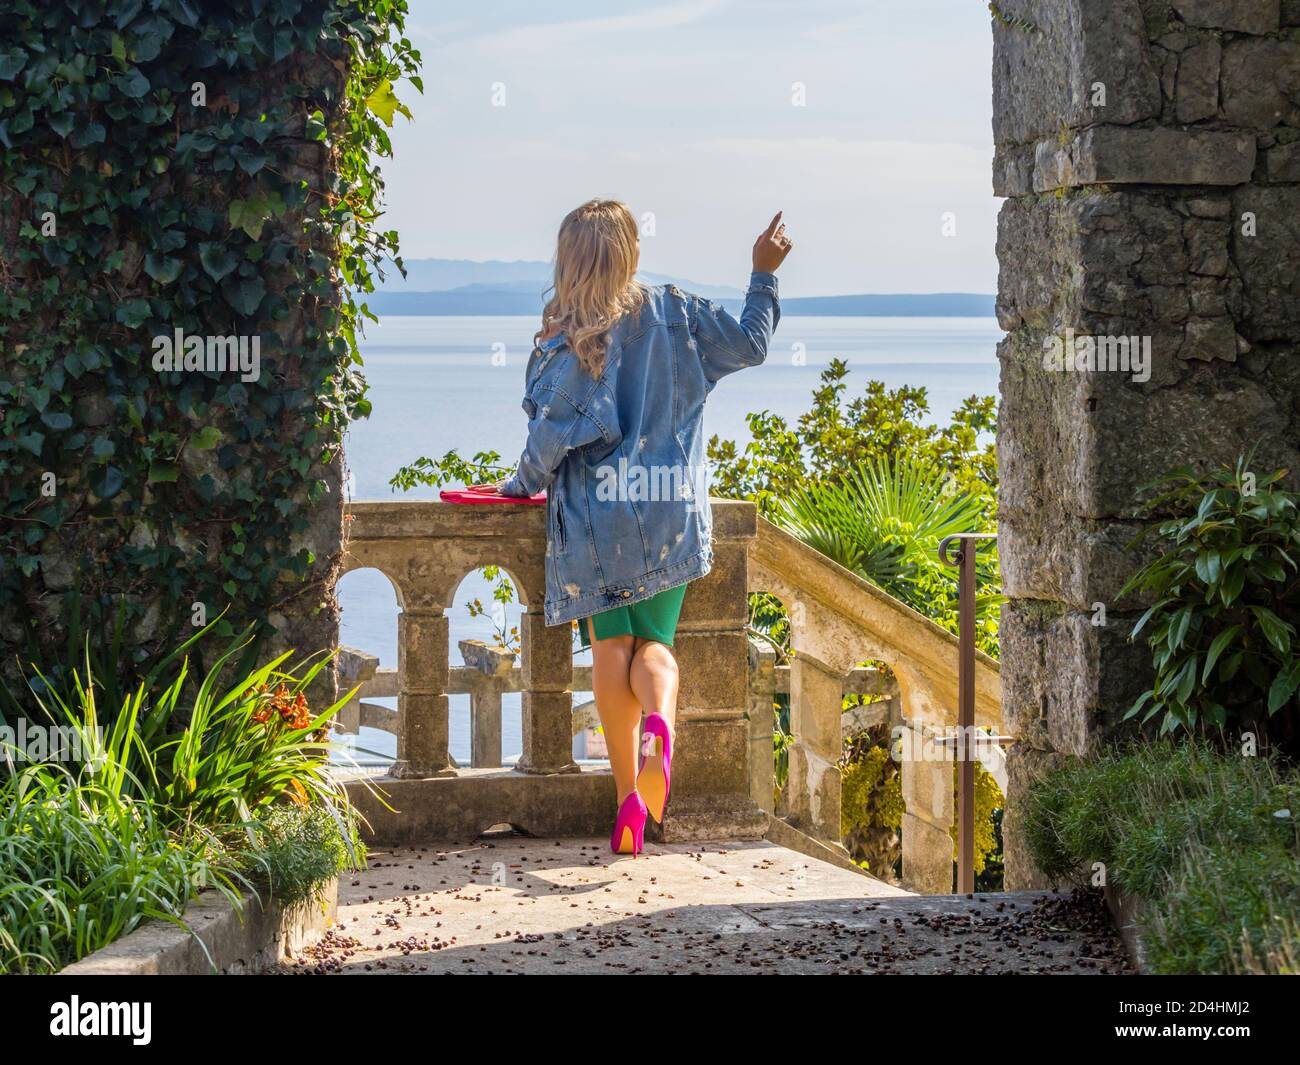 Blond young woman standing on balcony terrace promenade view from rear rearview behind aft legs Pink heels lifted raised raising leg showing something Stock Photo